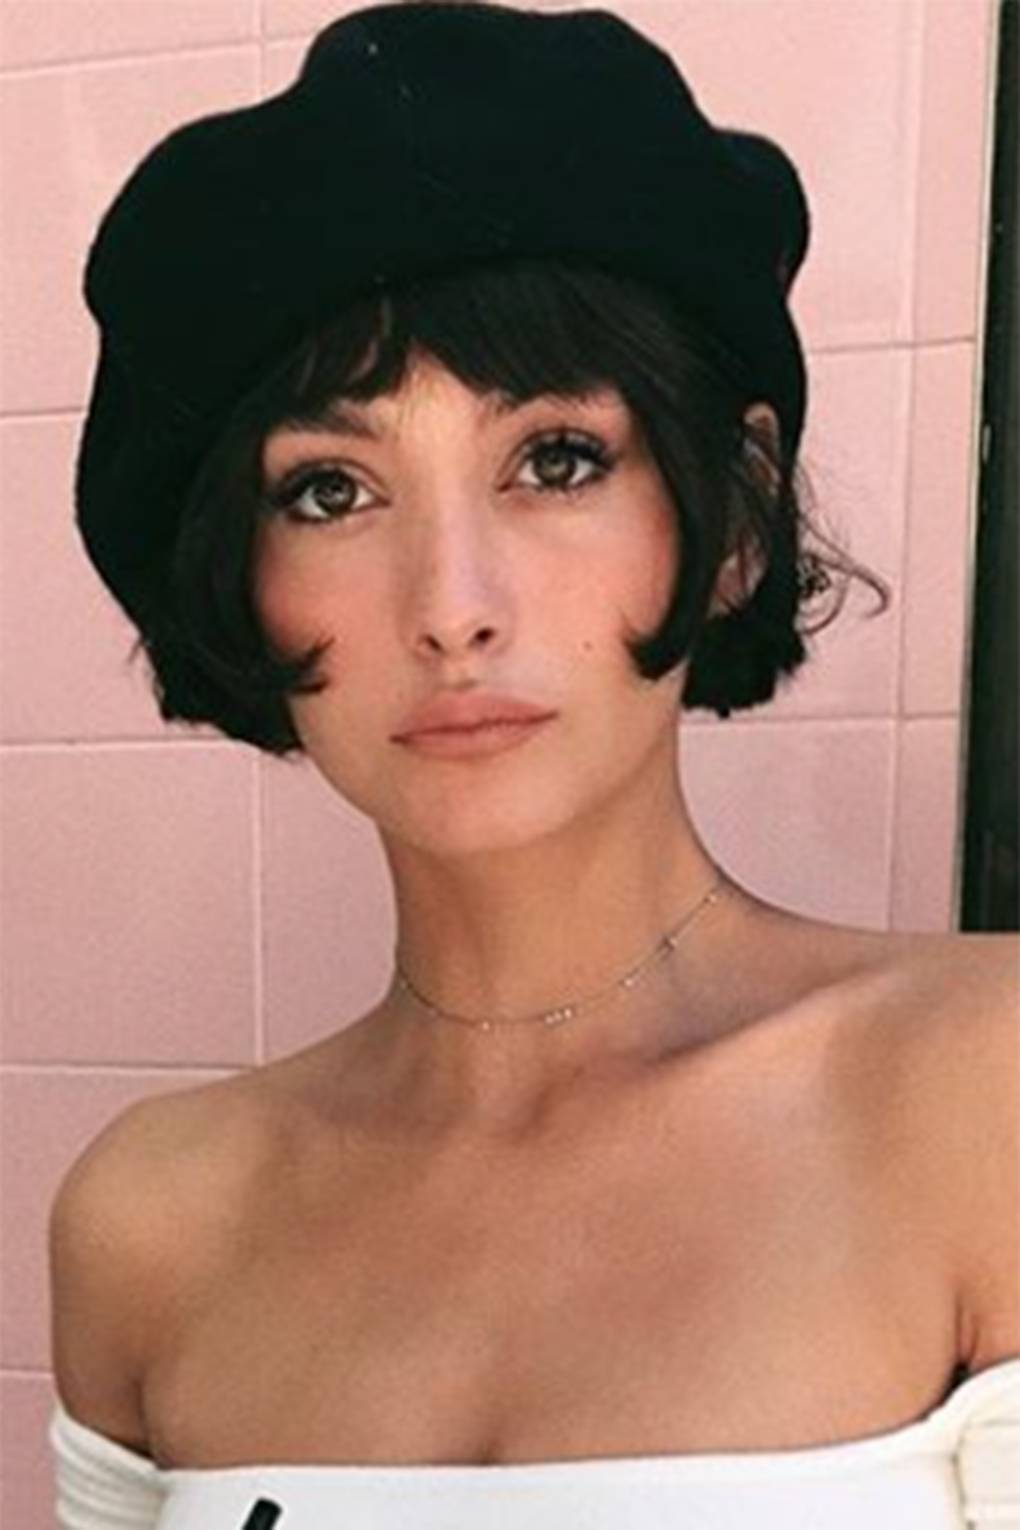 The French Bob Hair Trend Is A Cheekbone Skimming Hairstyle Glamour Uk